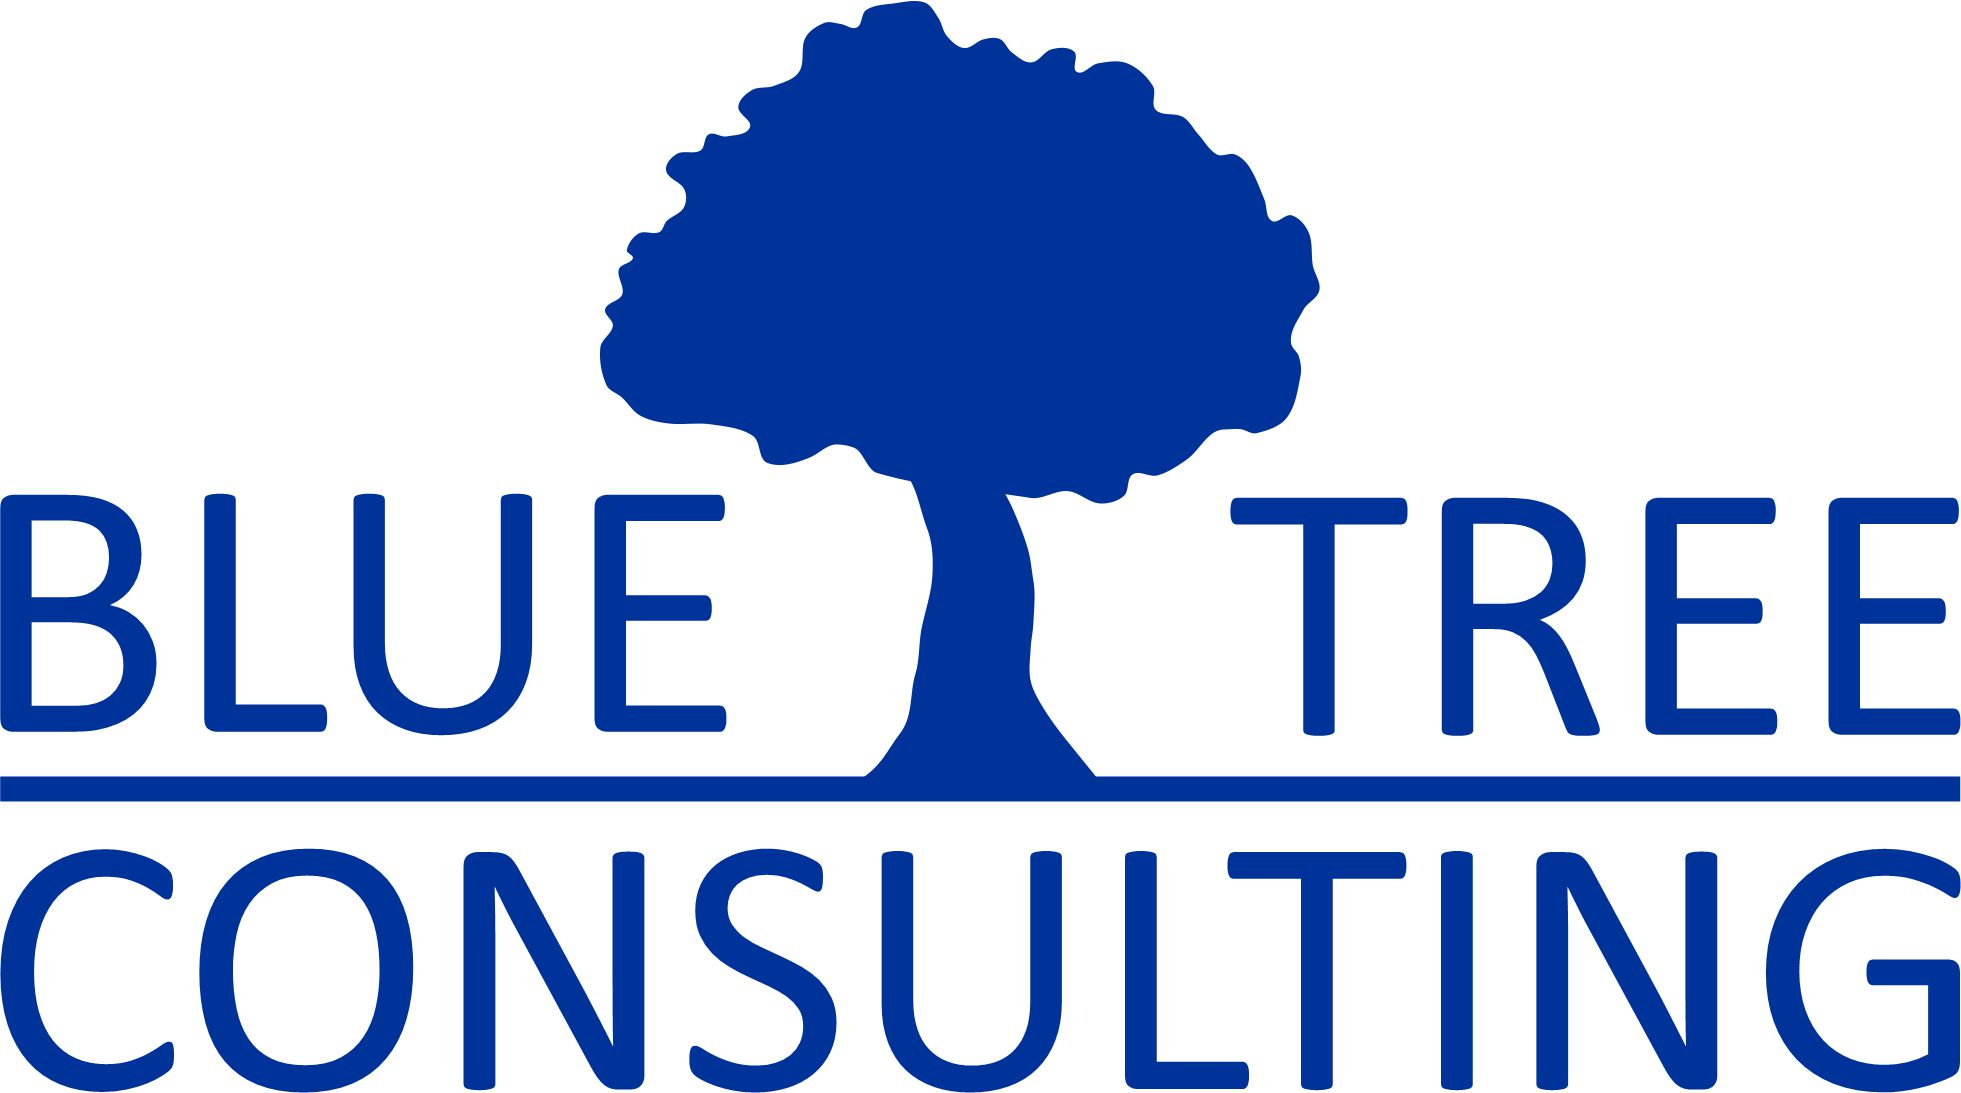 Bluetreeconsulting